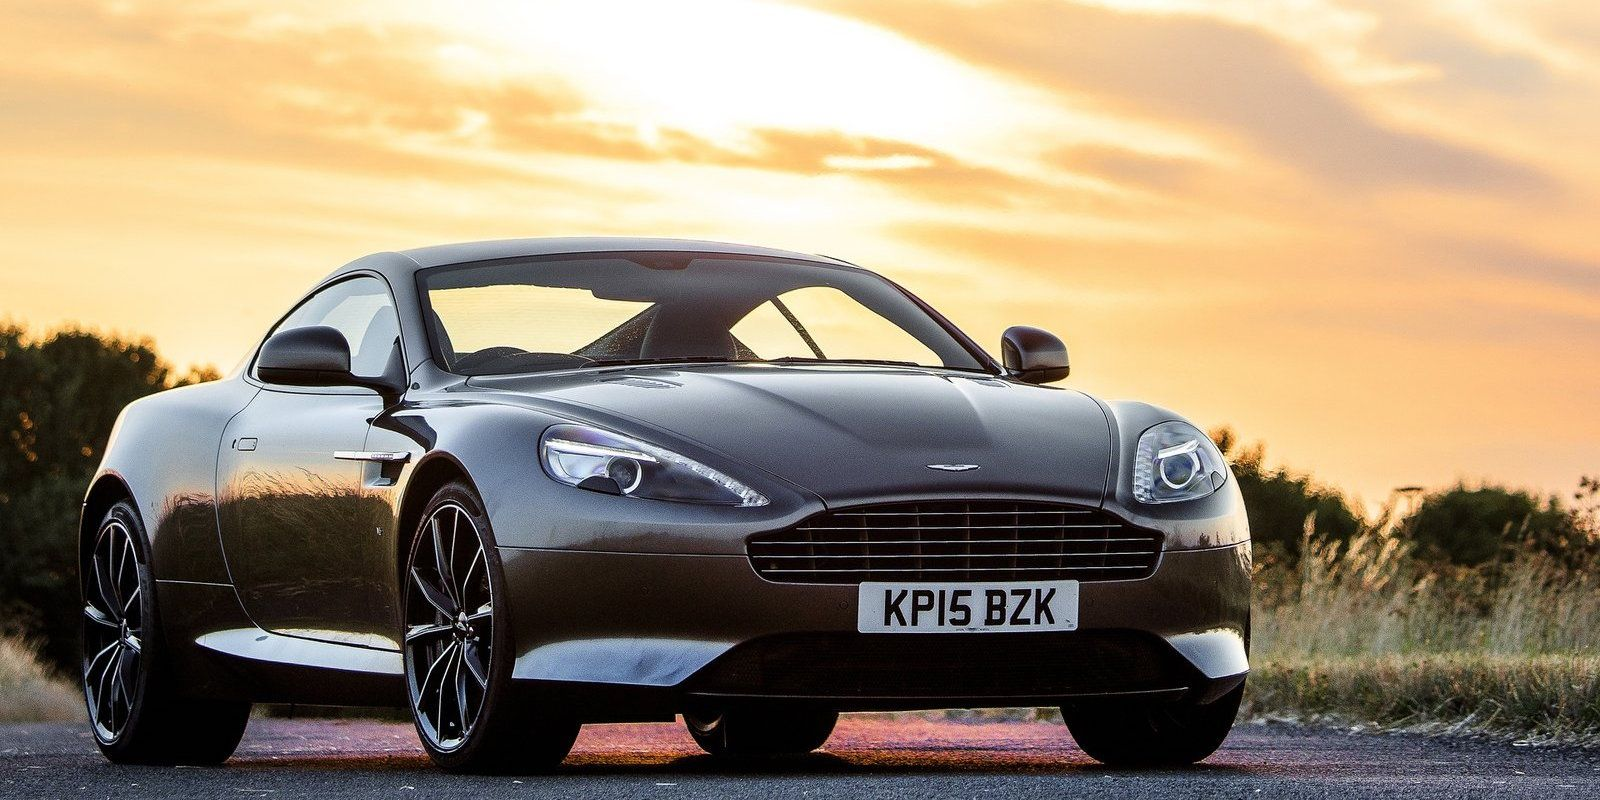 """<p>Like a cup of Earl Grey tea, a Lennon-McCartney composition, or the comedy of Monty Python, the Aston Martin DB9 is instantly recognizable, fundamentally timeless, and resolutely British. That's true despite two decades of ownership under interests based outside the U.K. Designed by Ian Callum and Henrik Fisker, it was unveiled in 2003 and immediately set to the task of dropping jaws and separating buyers from their money. Based on Aston's—by way of then-owner Ford—aluminum-intensive Vertical Horizontal (VH) platform, its styling and 12-cylinder engine became the template for Astons to come. But as anyone who's witnessed a wedding band perform a Beatles song can attest, sometimes even the classics can feel a bit tired. As a first step in adapting its legacy for the modern world, Aston limited 2016 DB9 production to only&nbsp&#x3B;<a href=""""http://www.caranddriver.com/reviews/2016-aston-martin-db9-gt-first-drive-review"""" target=""""_blank"""">the DB9 GT</a>. Packing a 540-hp V12, it sends the DB9 GT off with a parting gift of an additional 30 horsepower compared with the previous year's car. When the DB9 GTs are gone, its place in the lineup will be filled by the similarly styled and somewhat larger 2017 DB11. Sure, we'll miss it, but with a 13-year lifespan and looks that still make us go weak in the knees, the iconic DB9 likely will make the transition from production to classic without trouble. —<em data-redactor-tag=""""em"""">Andrew Wendler</em><span class=""""redactor-invisible-space"""" data-verified=""""redactor"""" data-redactor-tag=""""span"""" data-redactor-class=""""redactor-invisible-space""""></span></p>"""